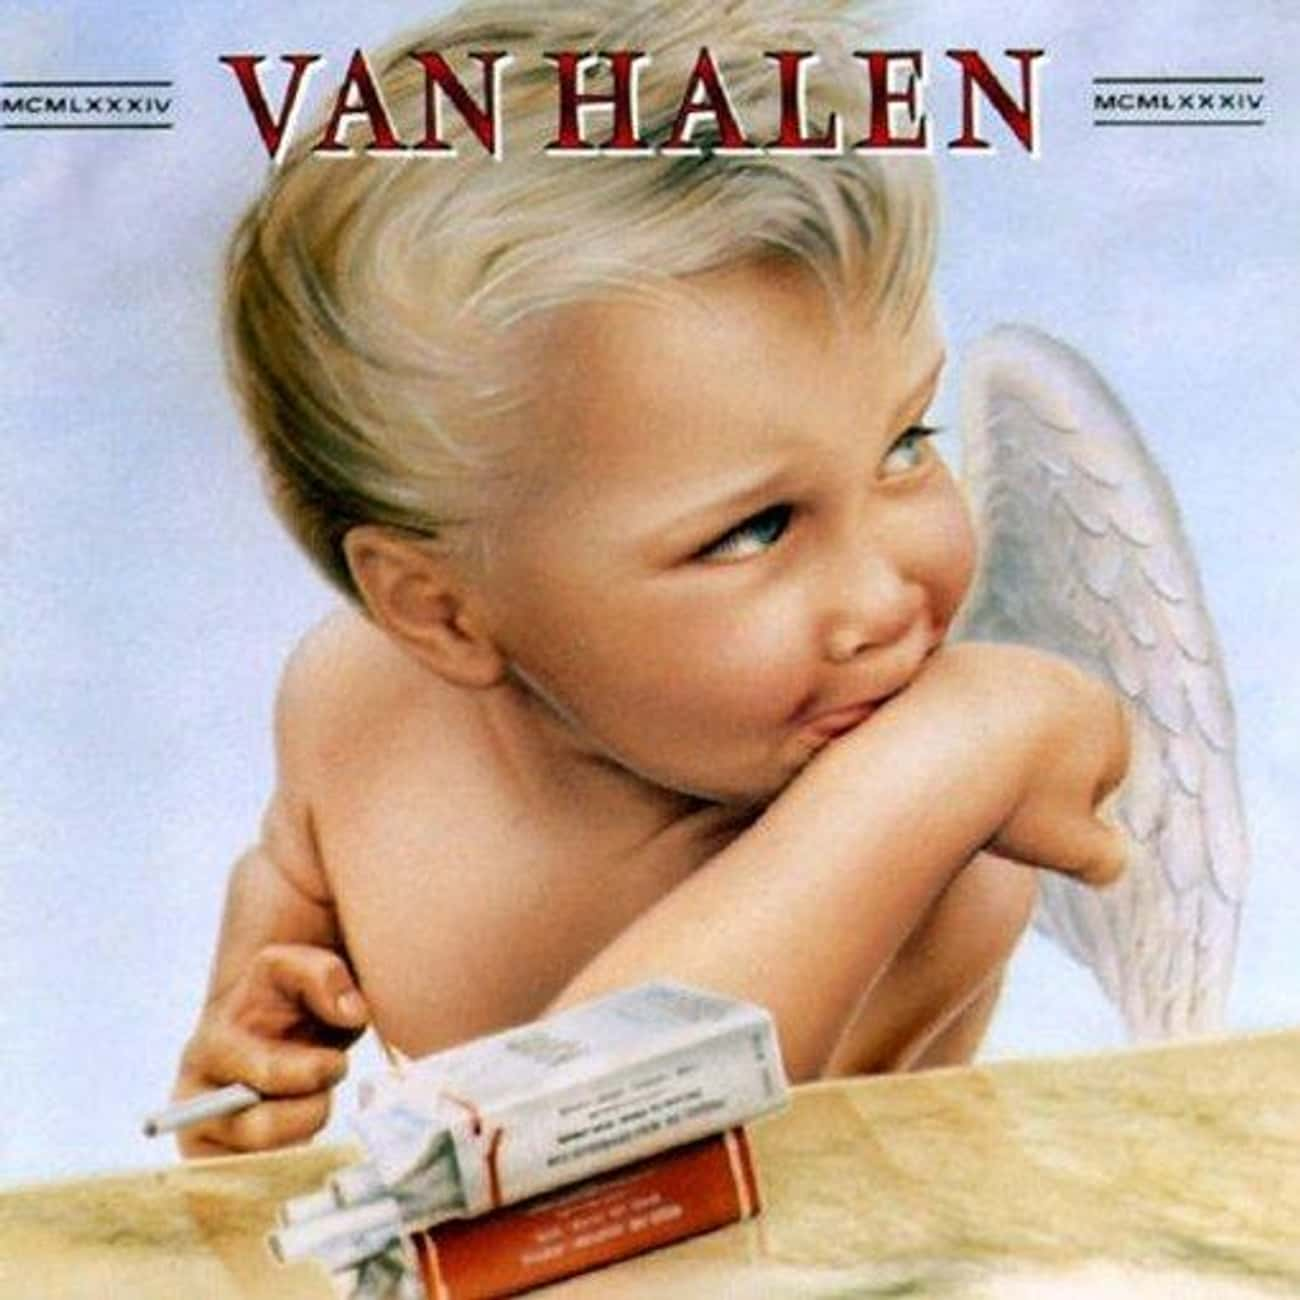 1984 is listed (or ranked) 2 on the list The Best Van Halen Albums of All Time